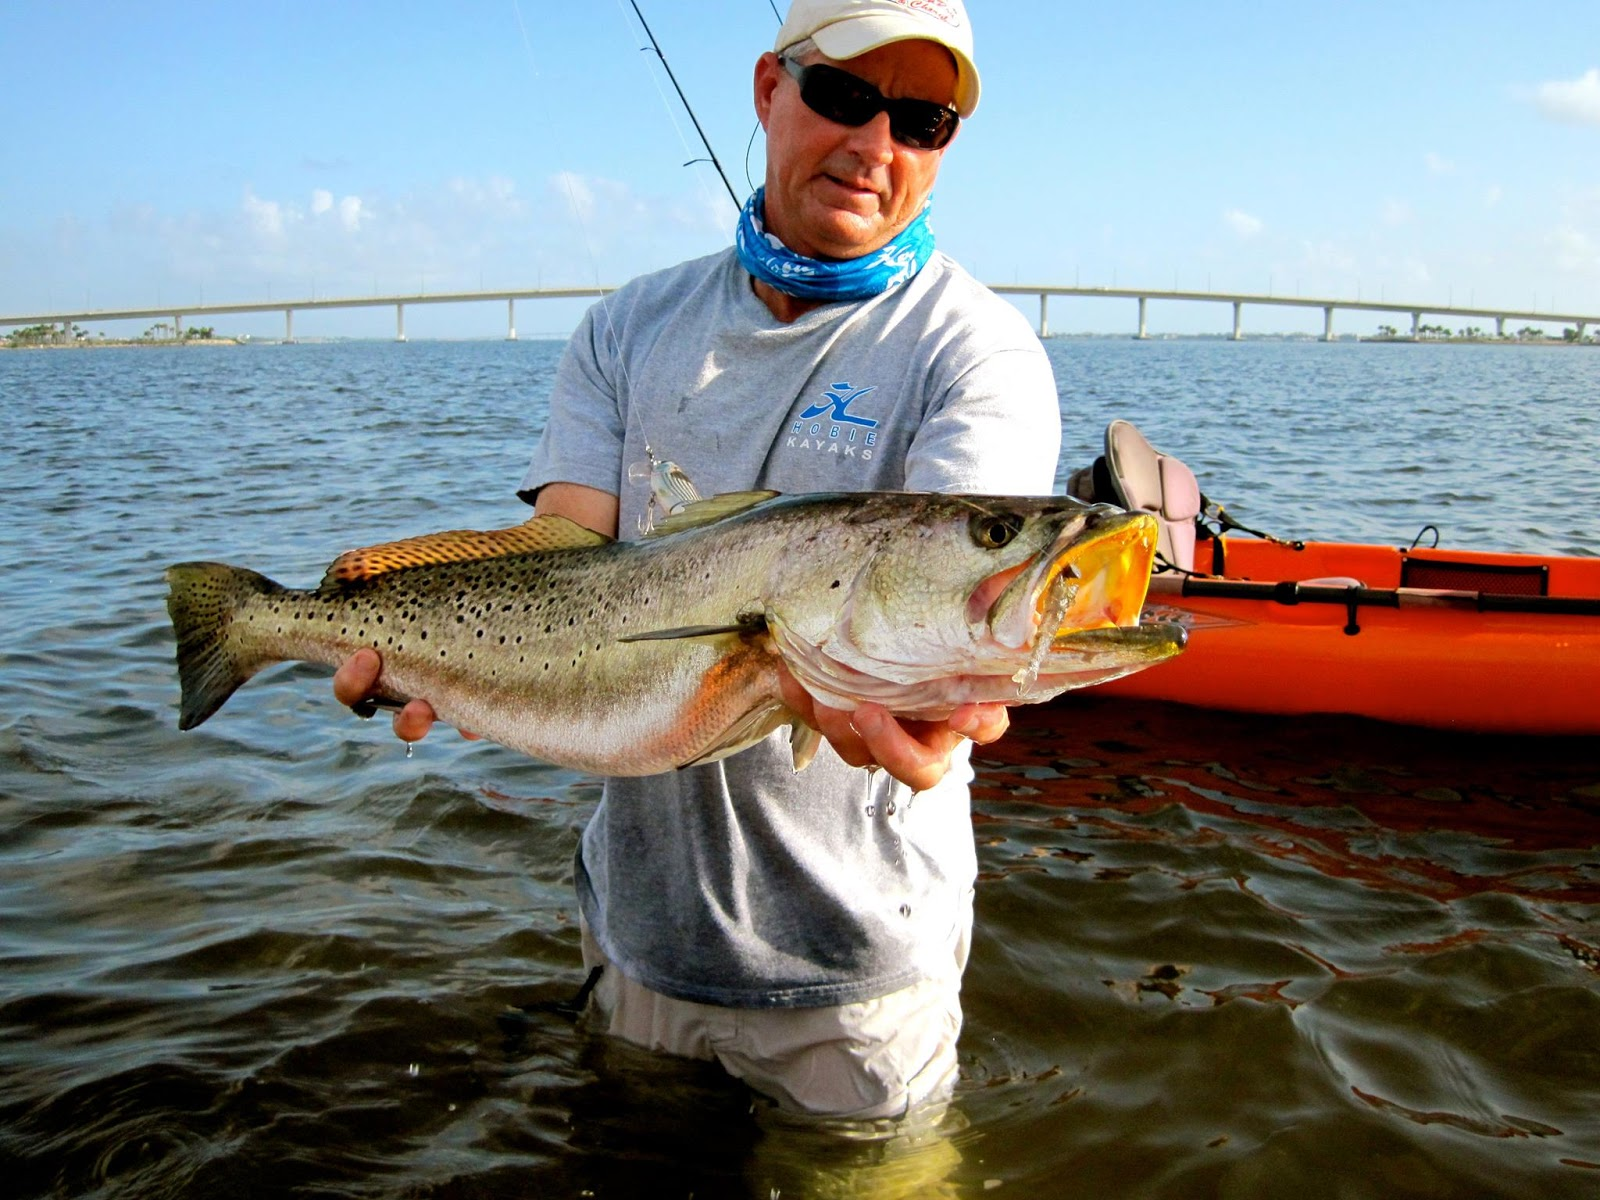 On foot angler from henry snook nook jensen beach for Snook nook fishing report